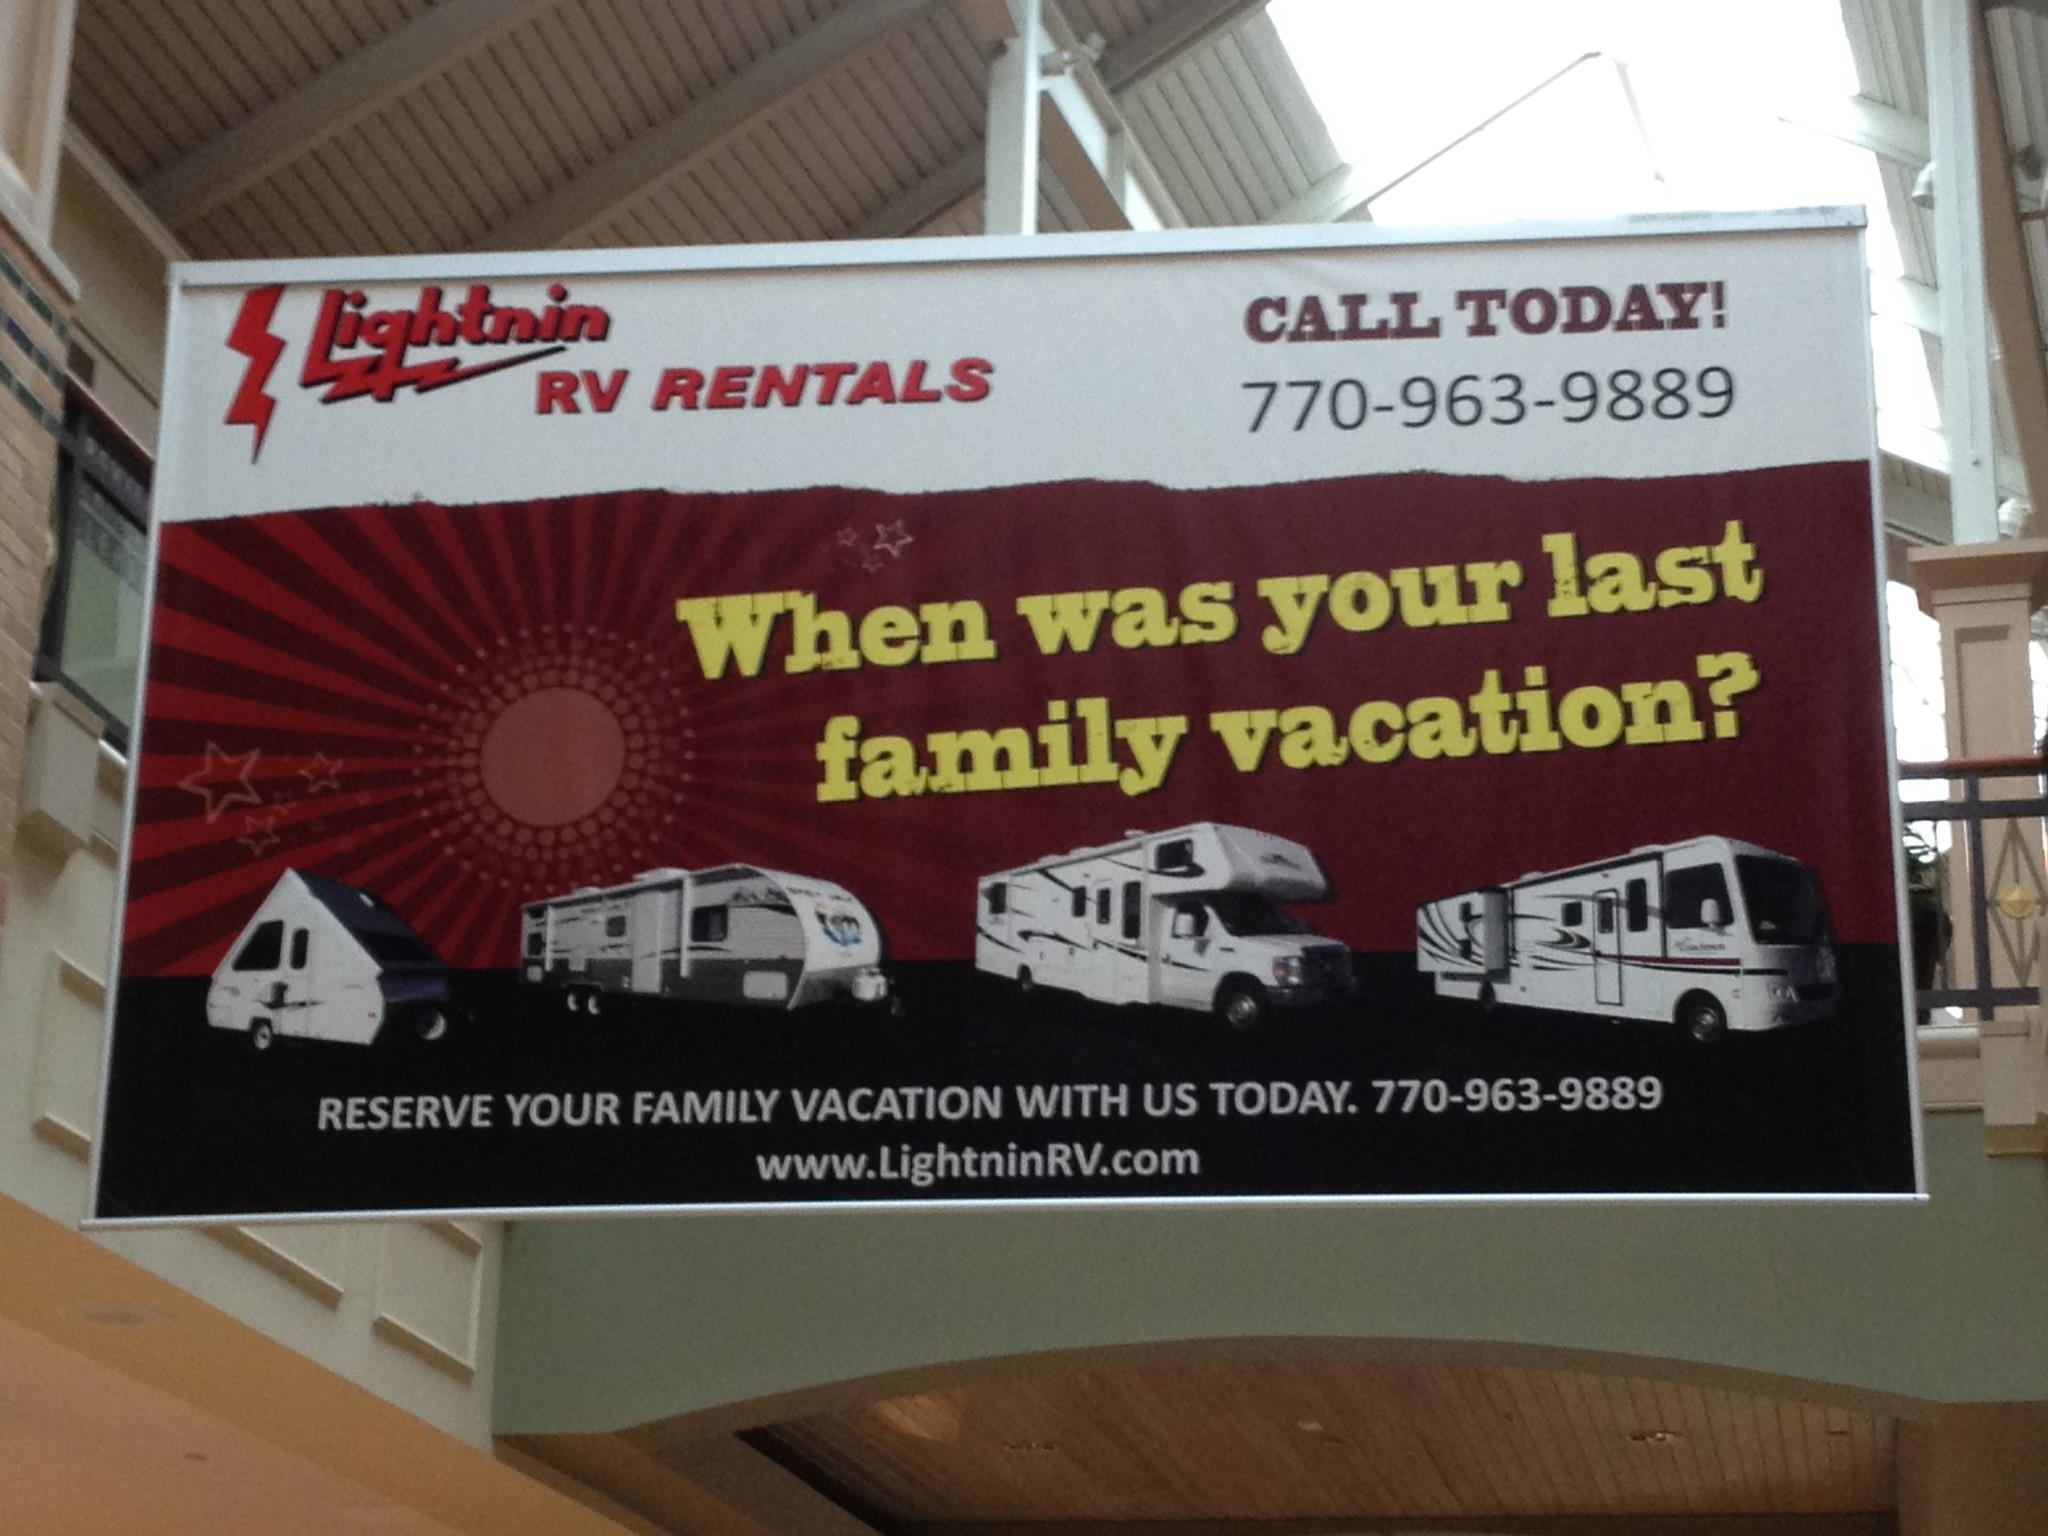 Lightnin RV Rentals